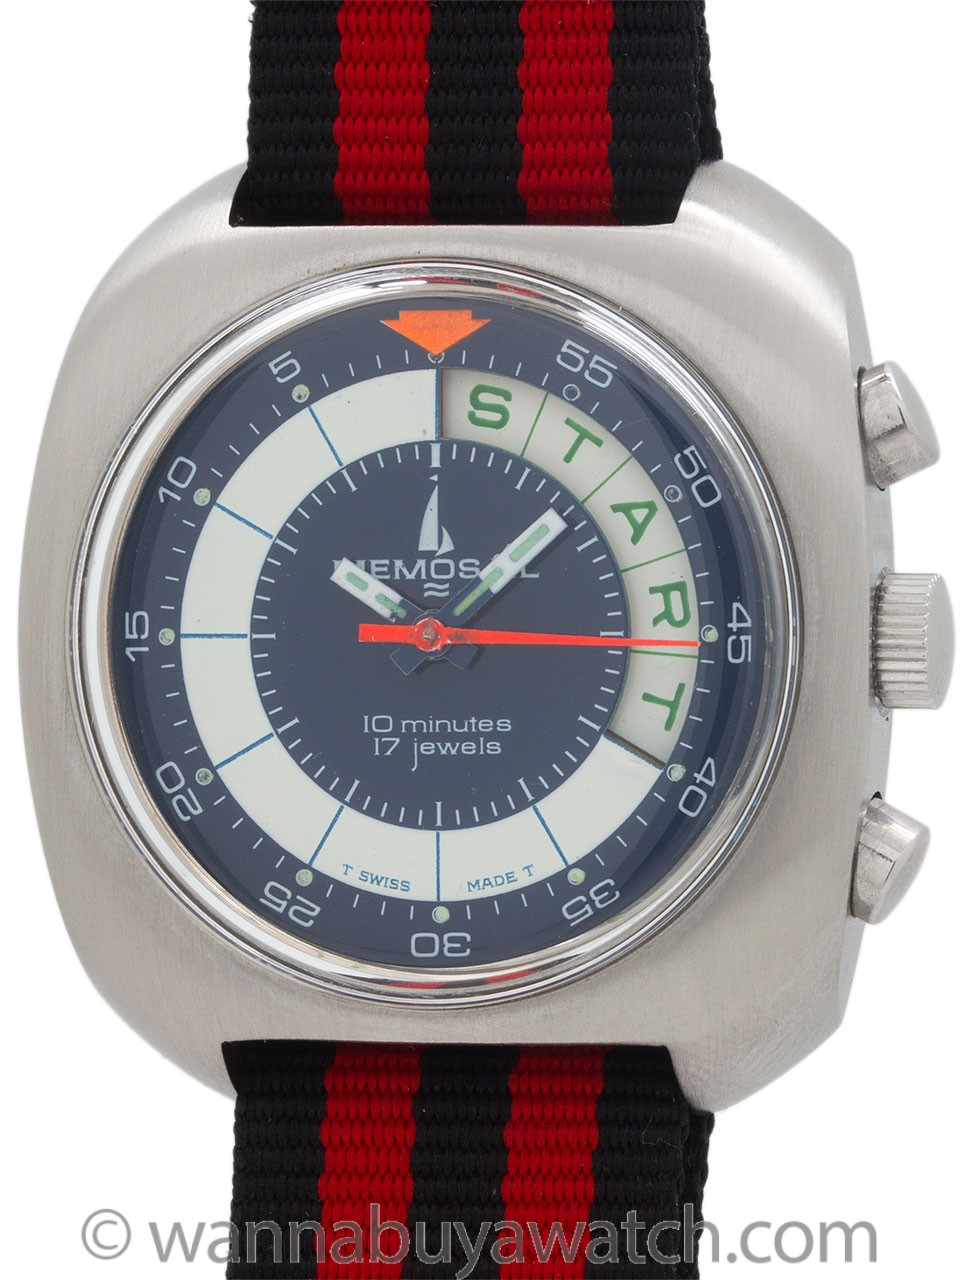 Memosail Swiss Yachting Chronograph New Old Stock circa 1970's